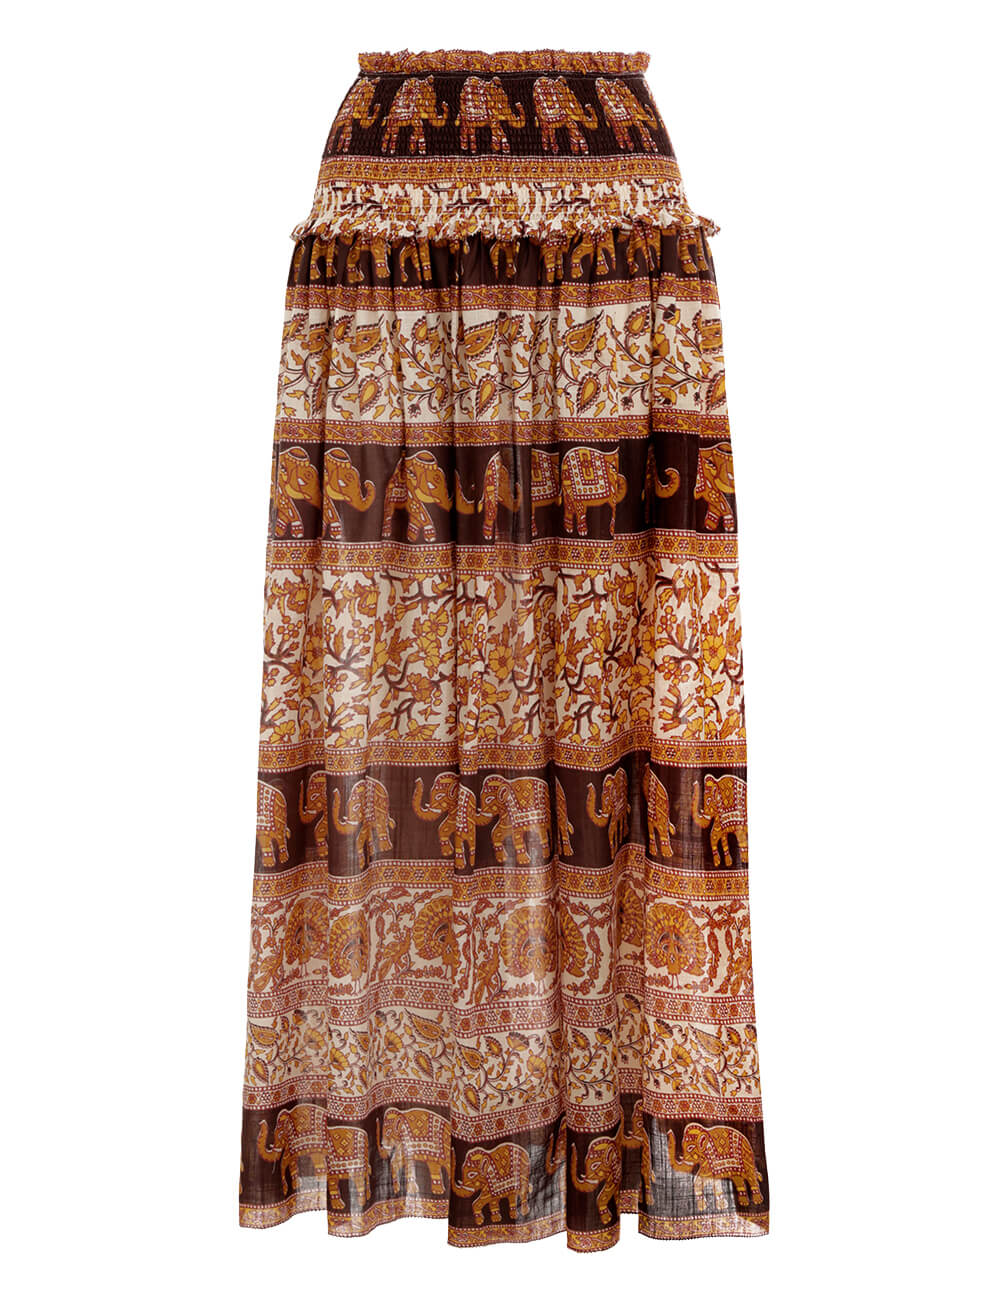 Suraya Shirred Waist Skirt